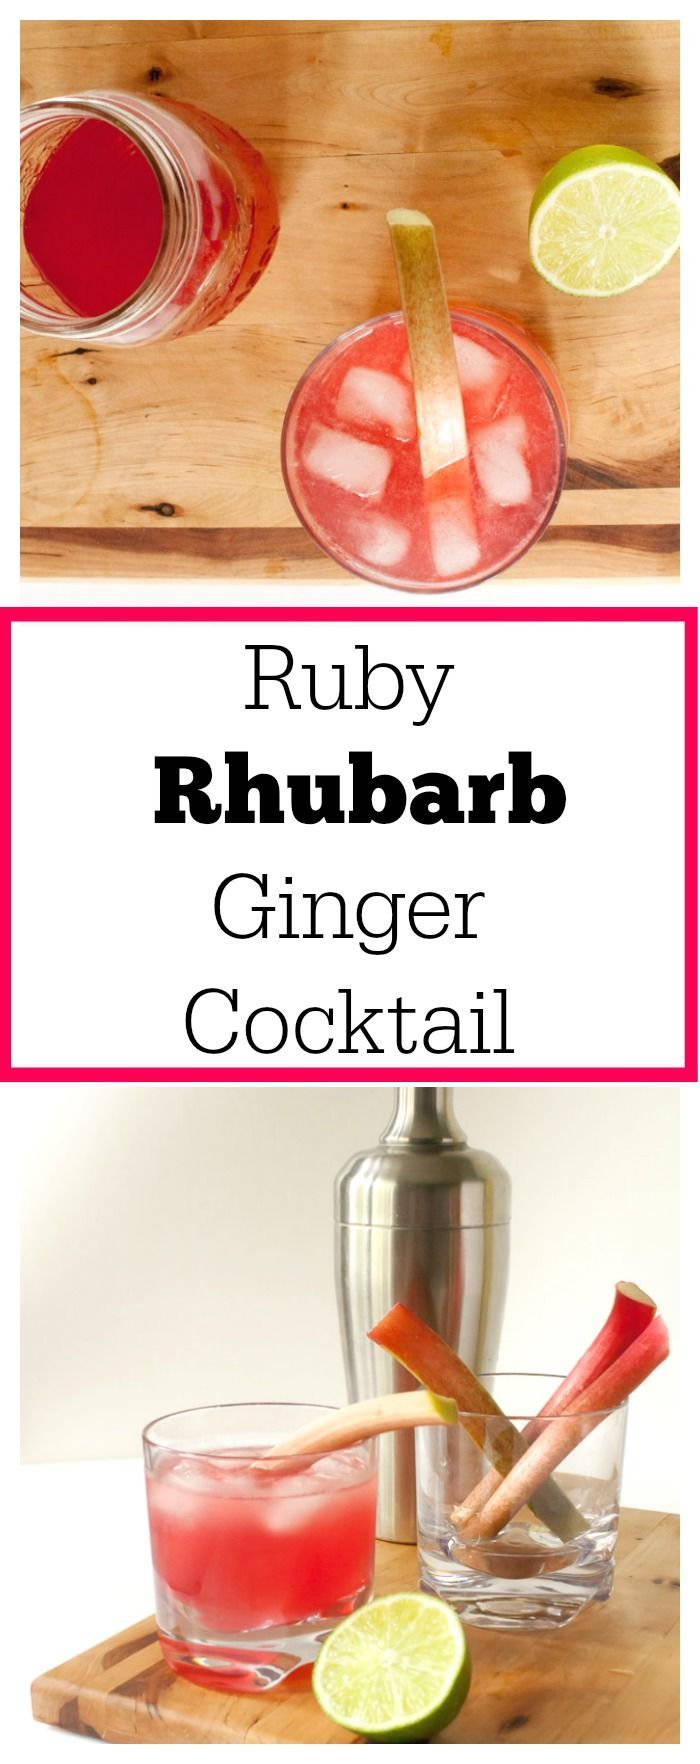 Spice up your summer with: RUBY RHUBARB GINGER COCKTAIL. This herbal refresher is just sweet enough with red raspberries, ginger, lime, rhubarb spirits, gin, and homemade Rhubarb Ginger Syrup | @TspCurry. For more healthy cocktail recipes: TeaspoonOfSpice.com